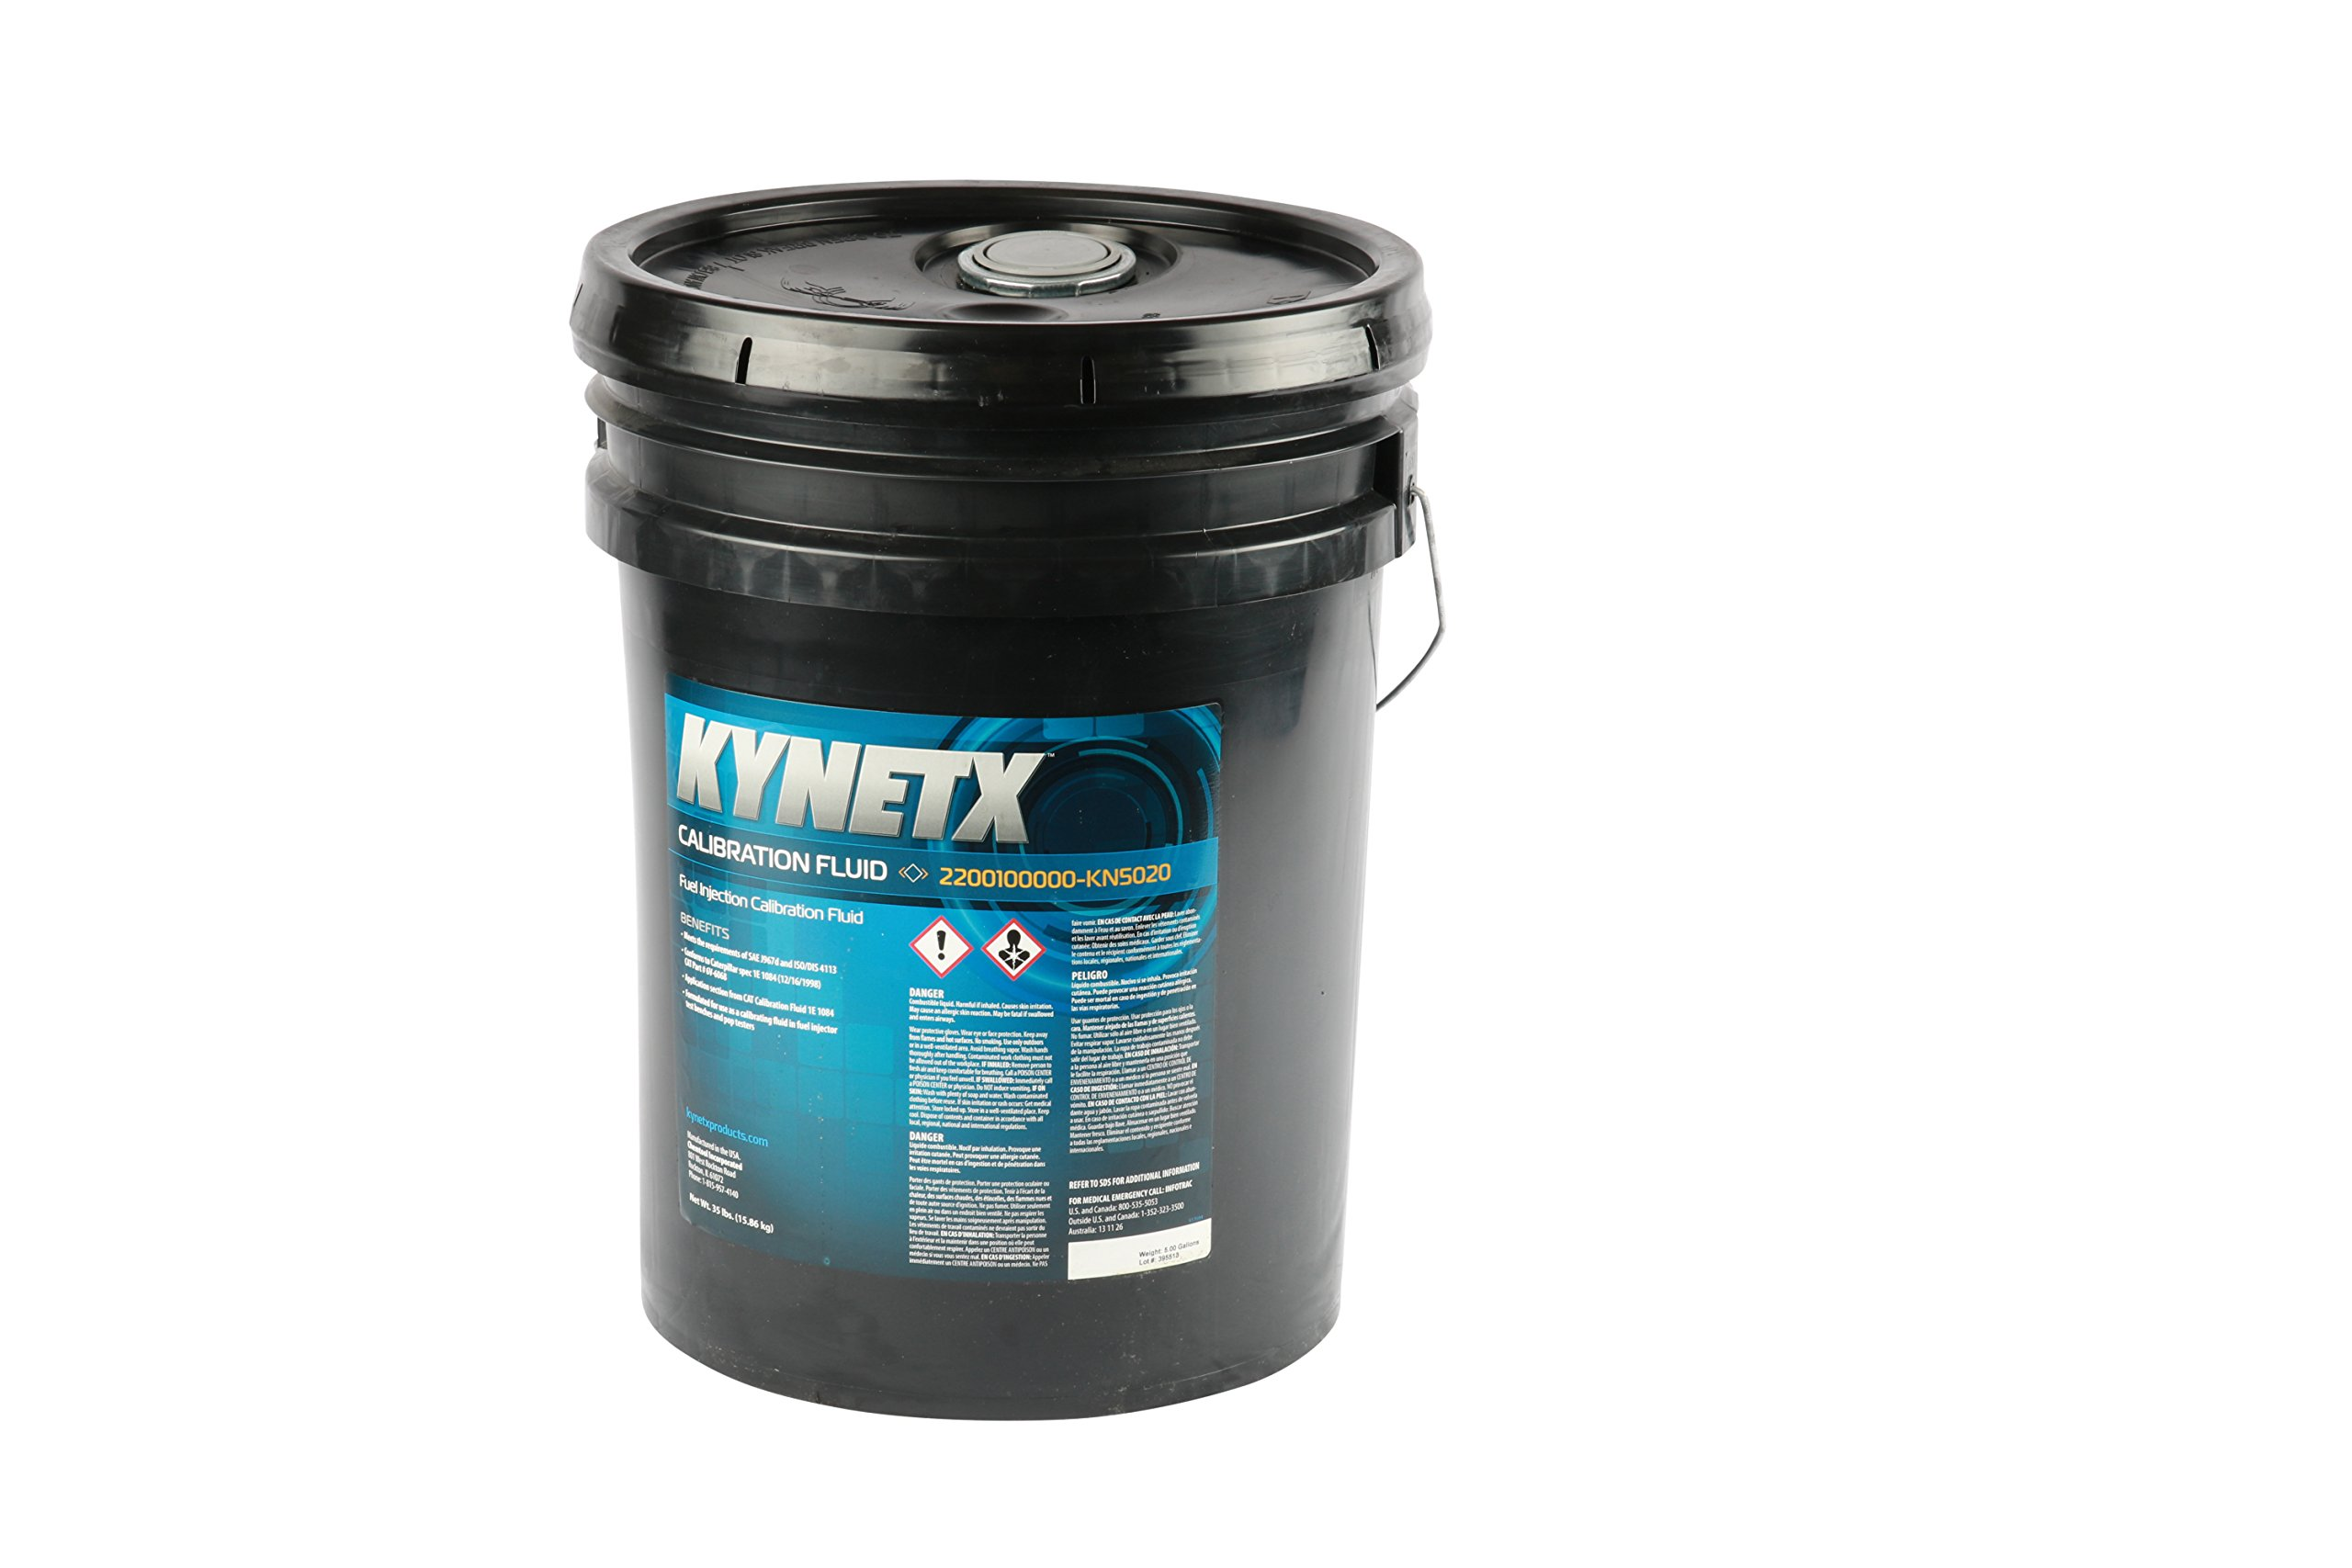 Kynetx Calibration Fluid, 5-Gal Pail, KN5020, Anti Corrosion Fluid, Low Viscosity Mineral Oil, Safe Fluid. Ideal for Heavy Truck and Construction, SAE J967d and ISO/DIS 4113